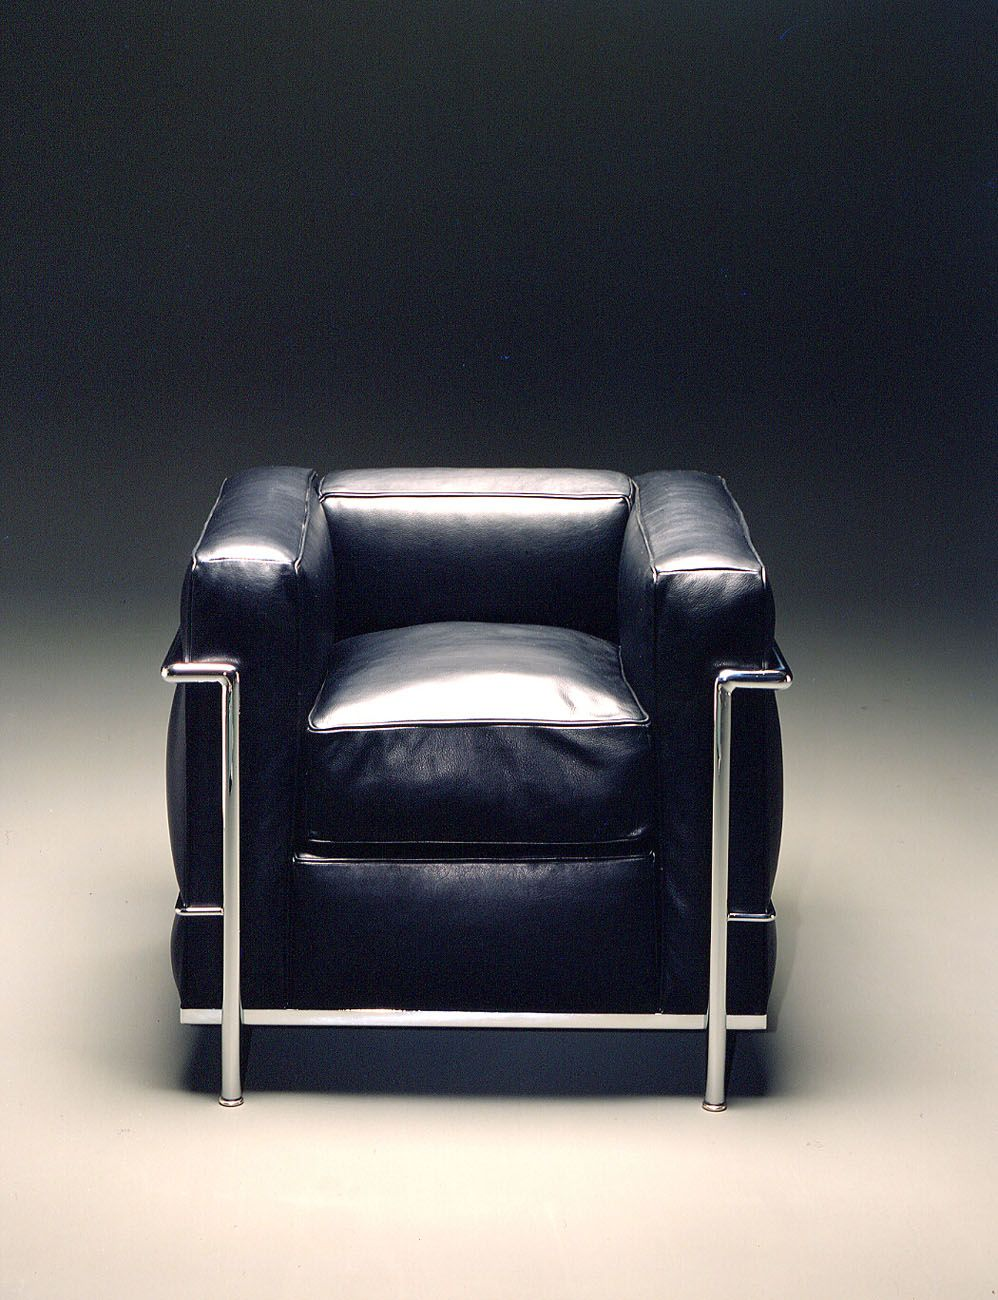 Le corbusier pierre jeanneret charlotte perriand the for Le corbusier lc2 nachbau